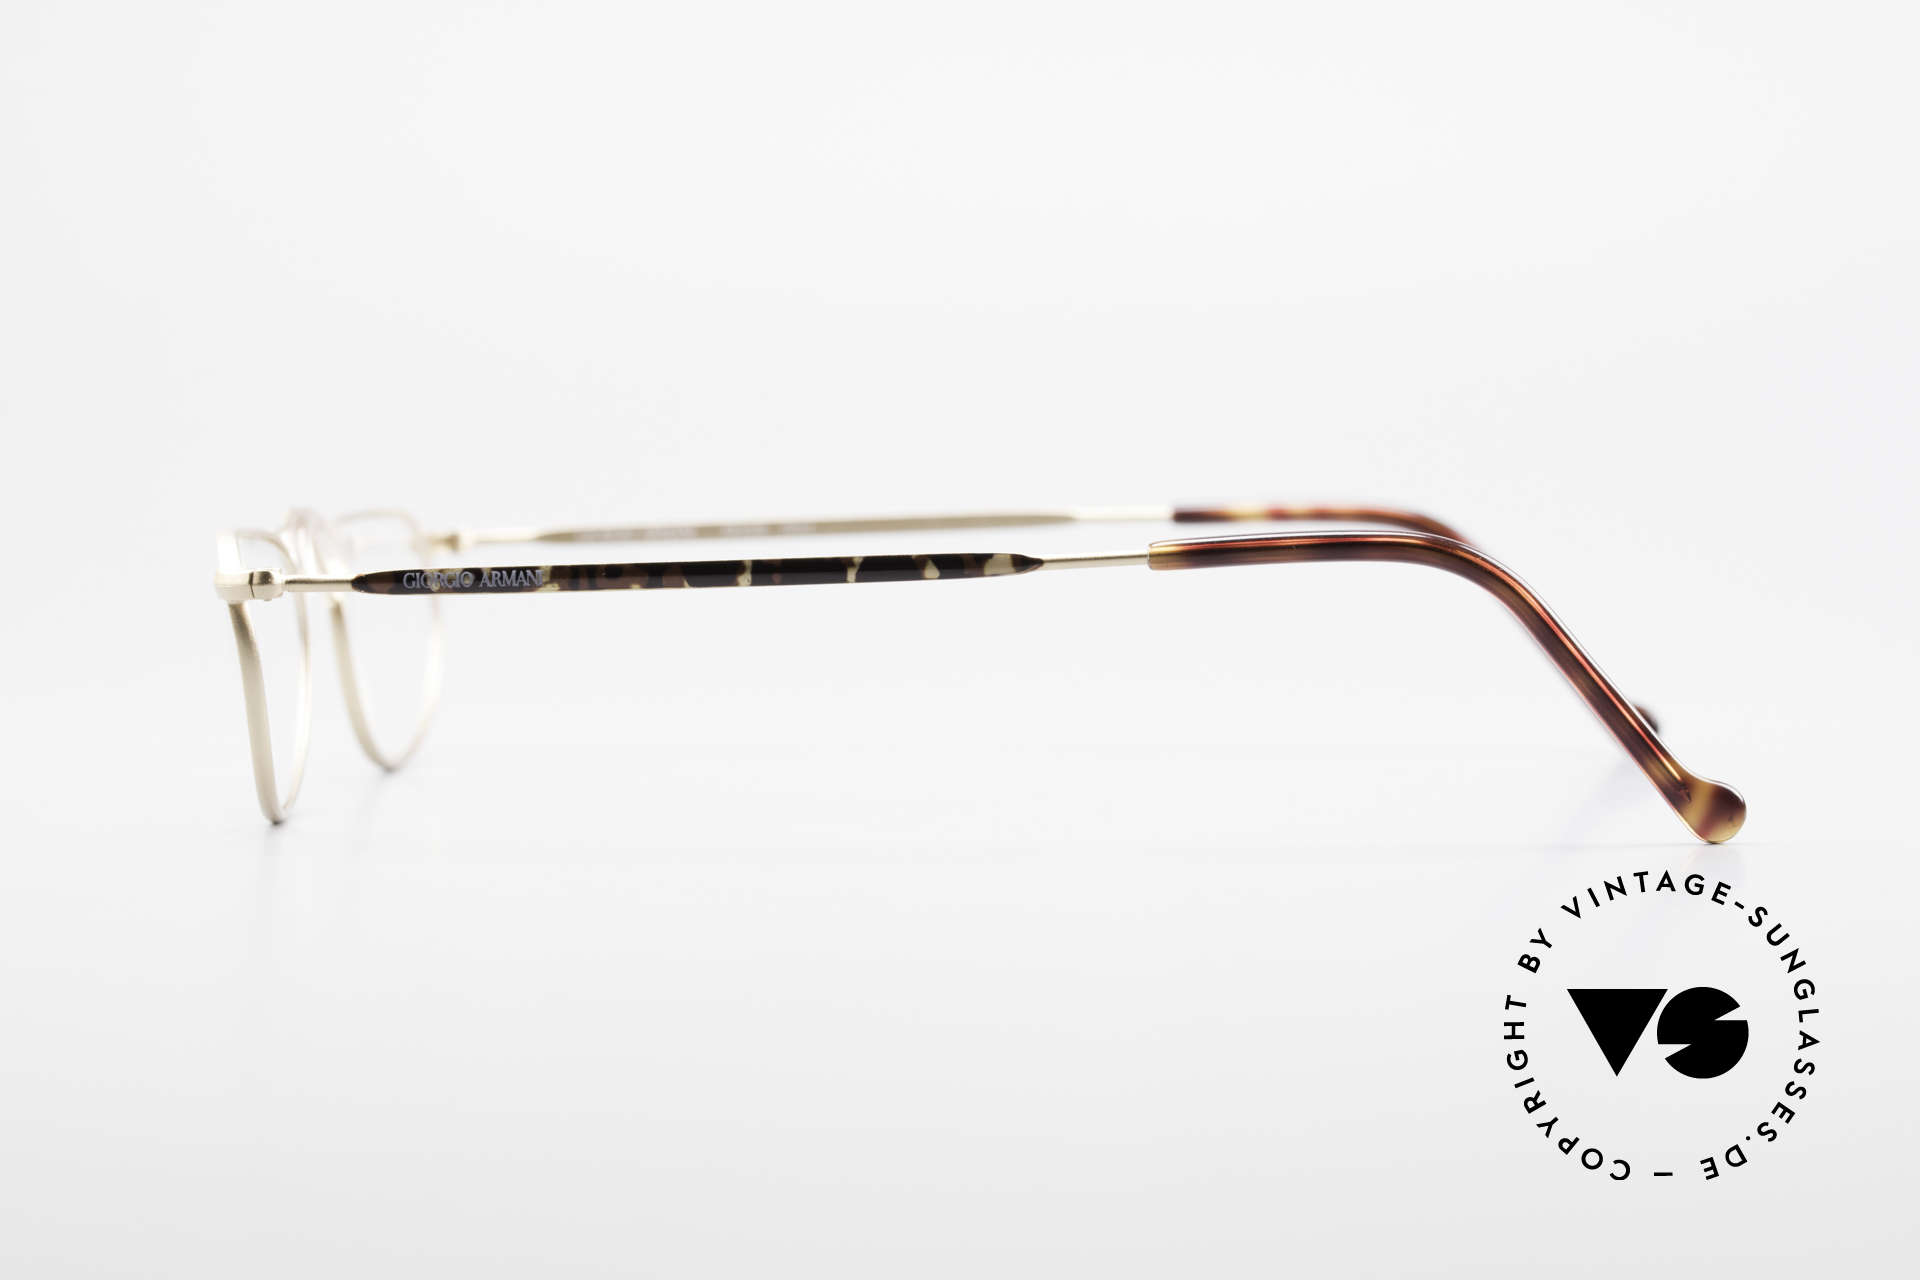 Giorgio Armani 133 Rare Old 80's Reading Glasses, unworn (like all our vintage reading eyeglasses), Made for Men and Women